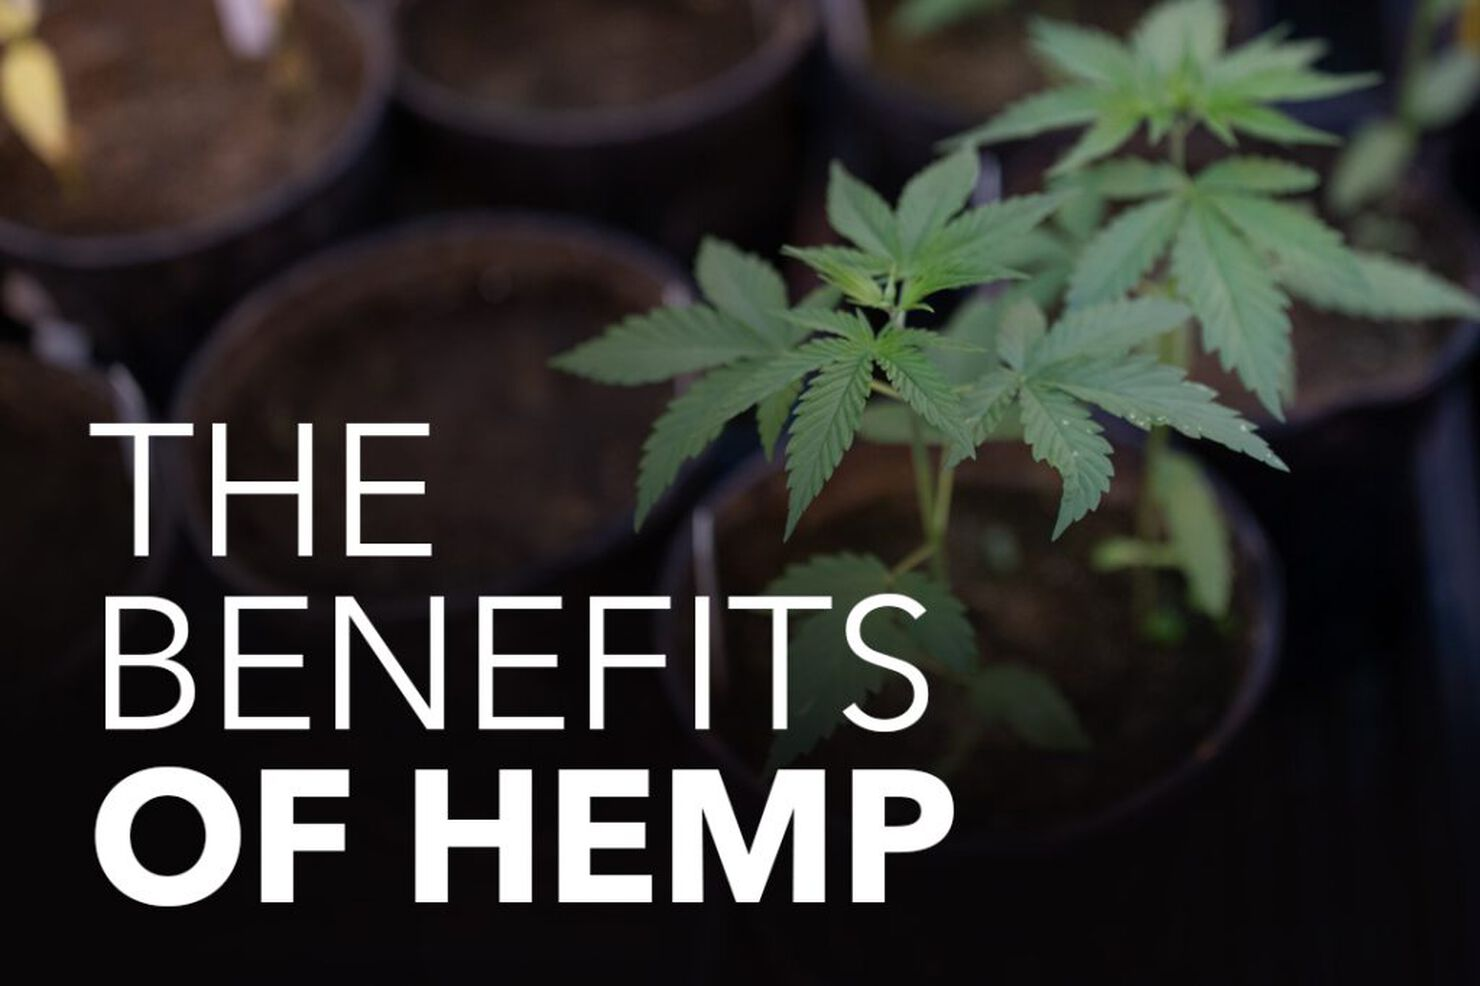 Hemp Oil Benefits & Uses: What Are the Health Benefits of Hemp Oil?